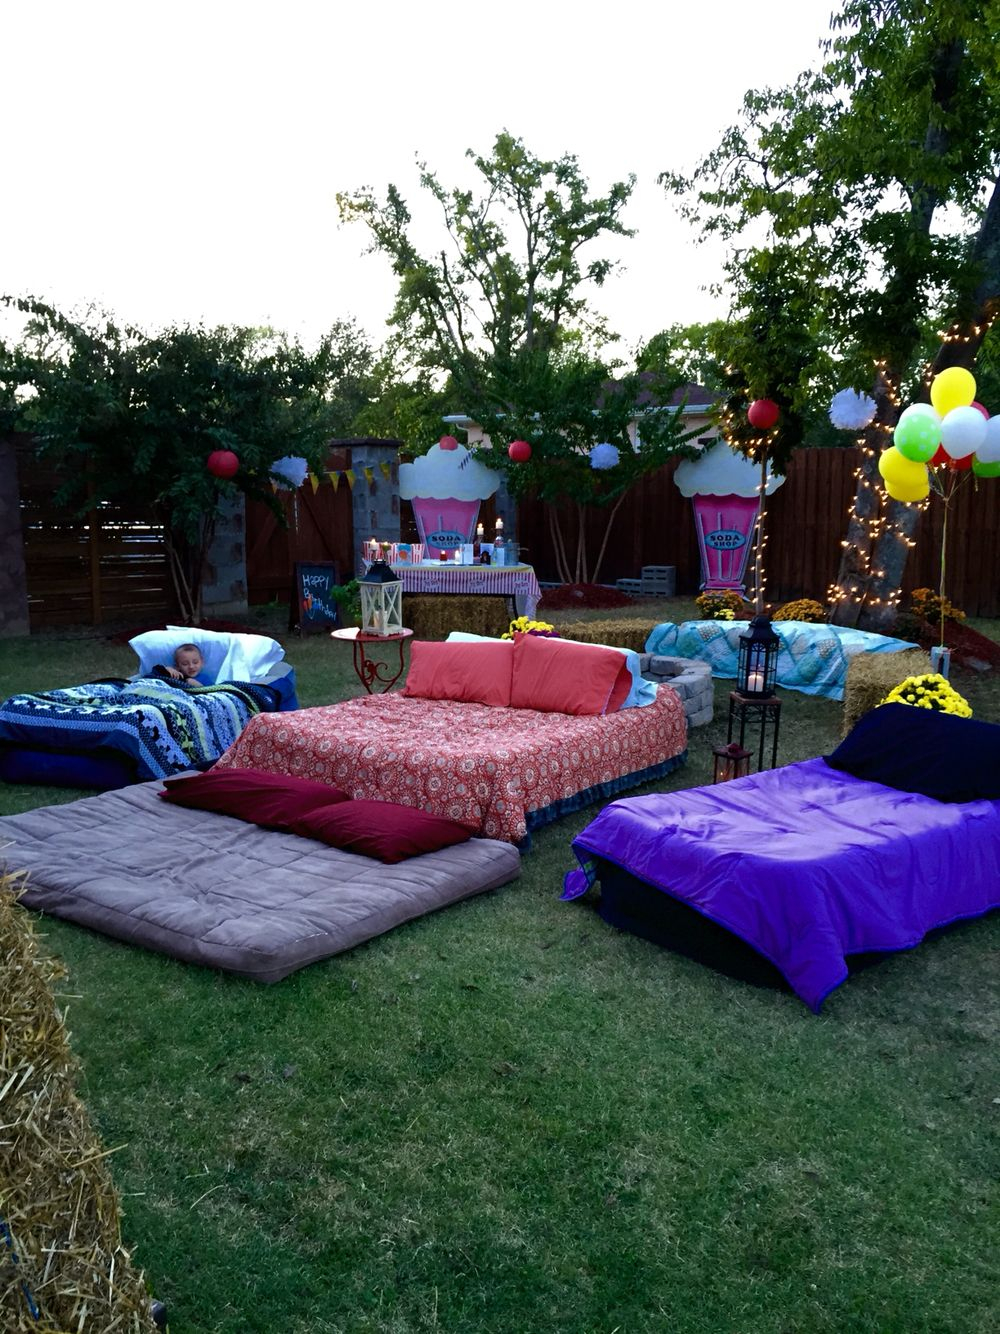 21.SIMPHOME.COM air mattresses for movie night outside pool party ideas